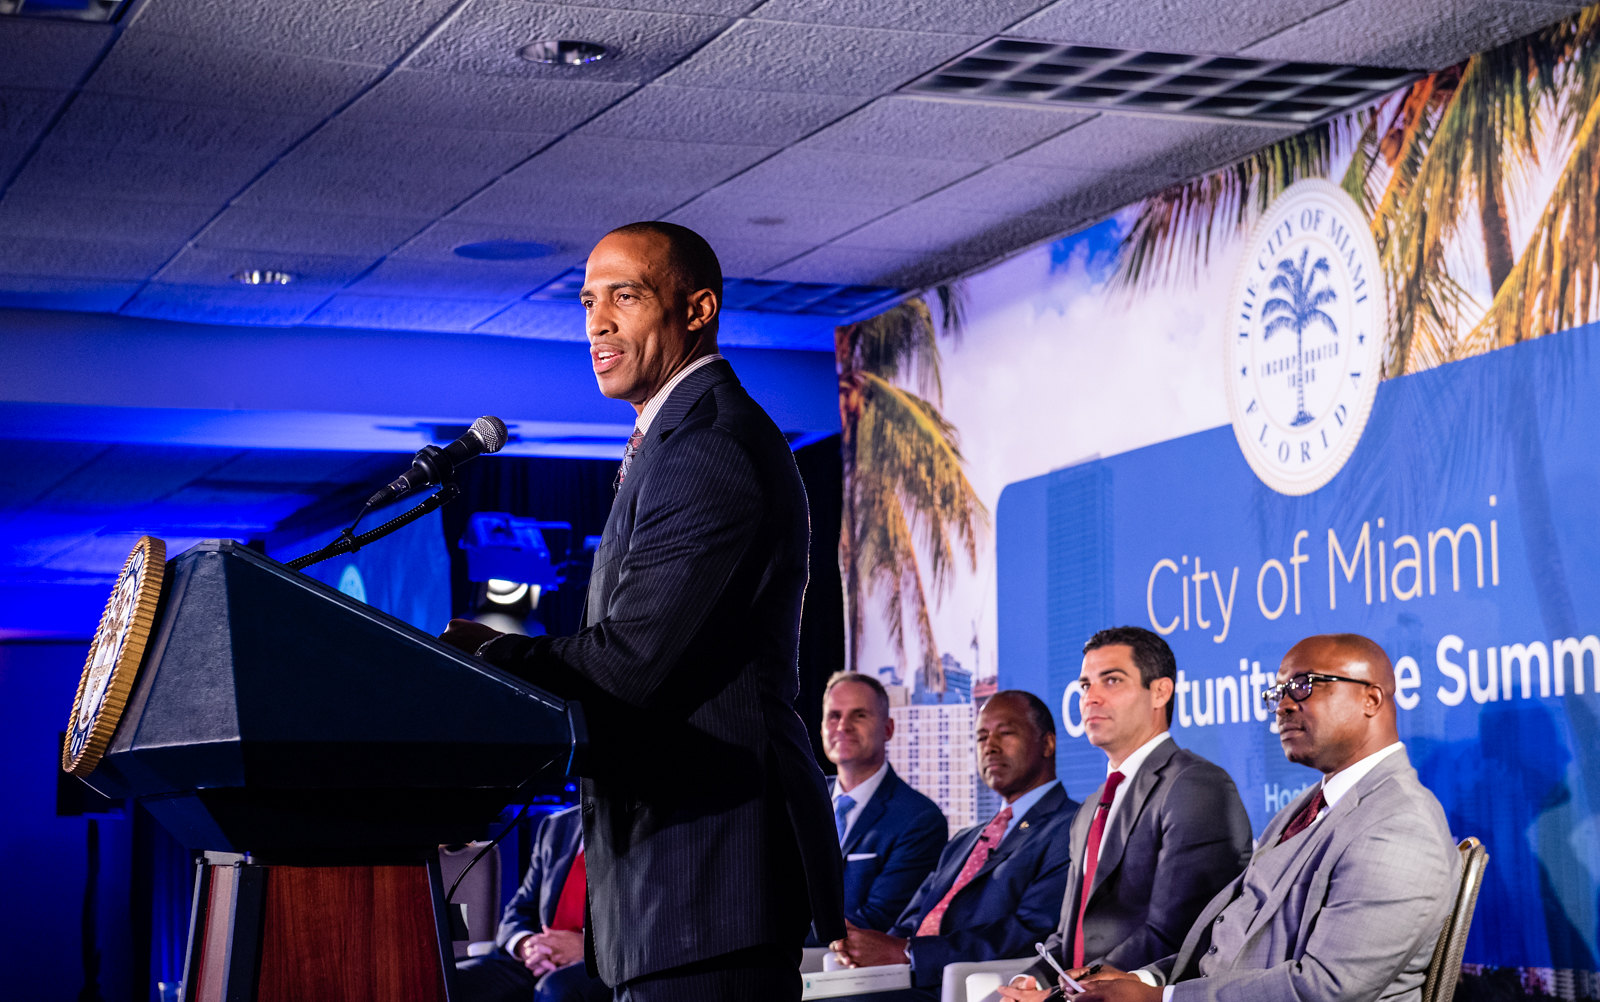 Executive Director Turner joins the City of Miami's Opportunity Zone Summit